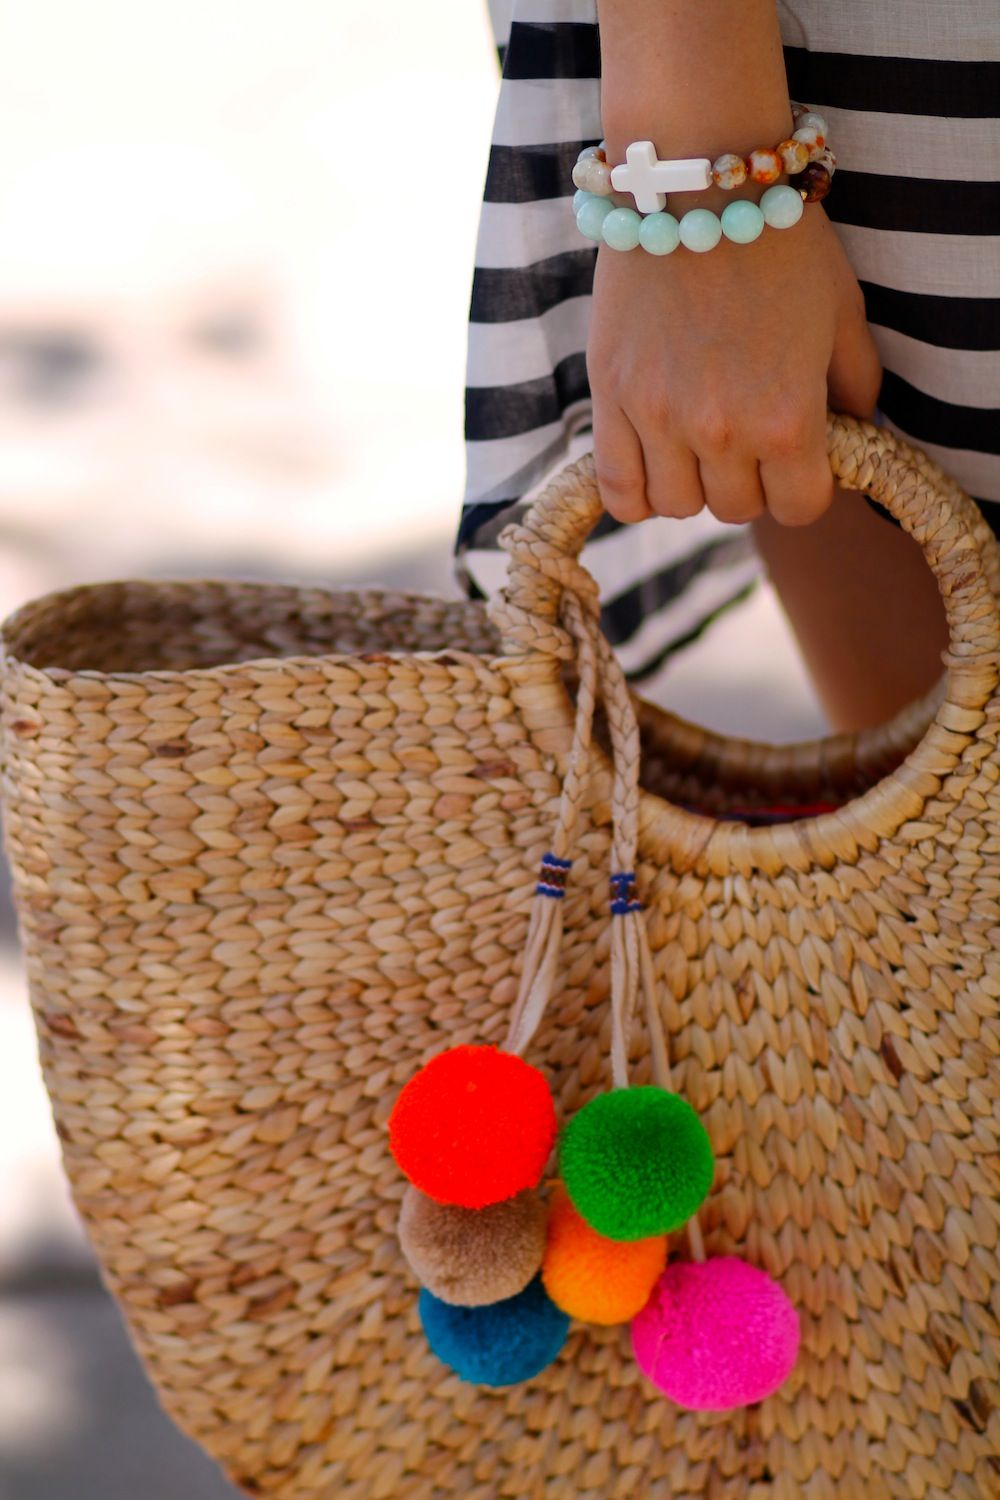 Wicker Basket With Pom Poms : Beach tote straw summer bag pom poms wicker